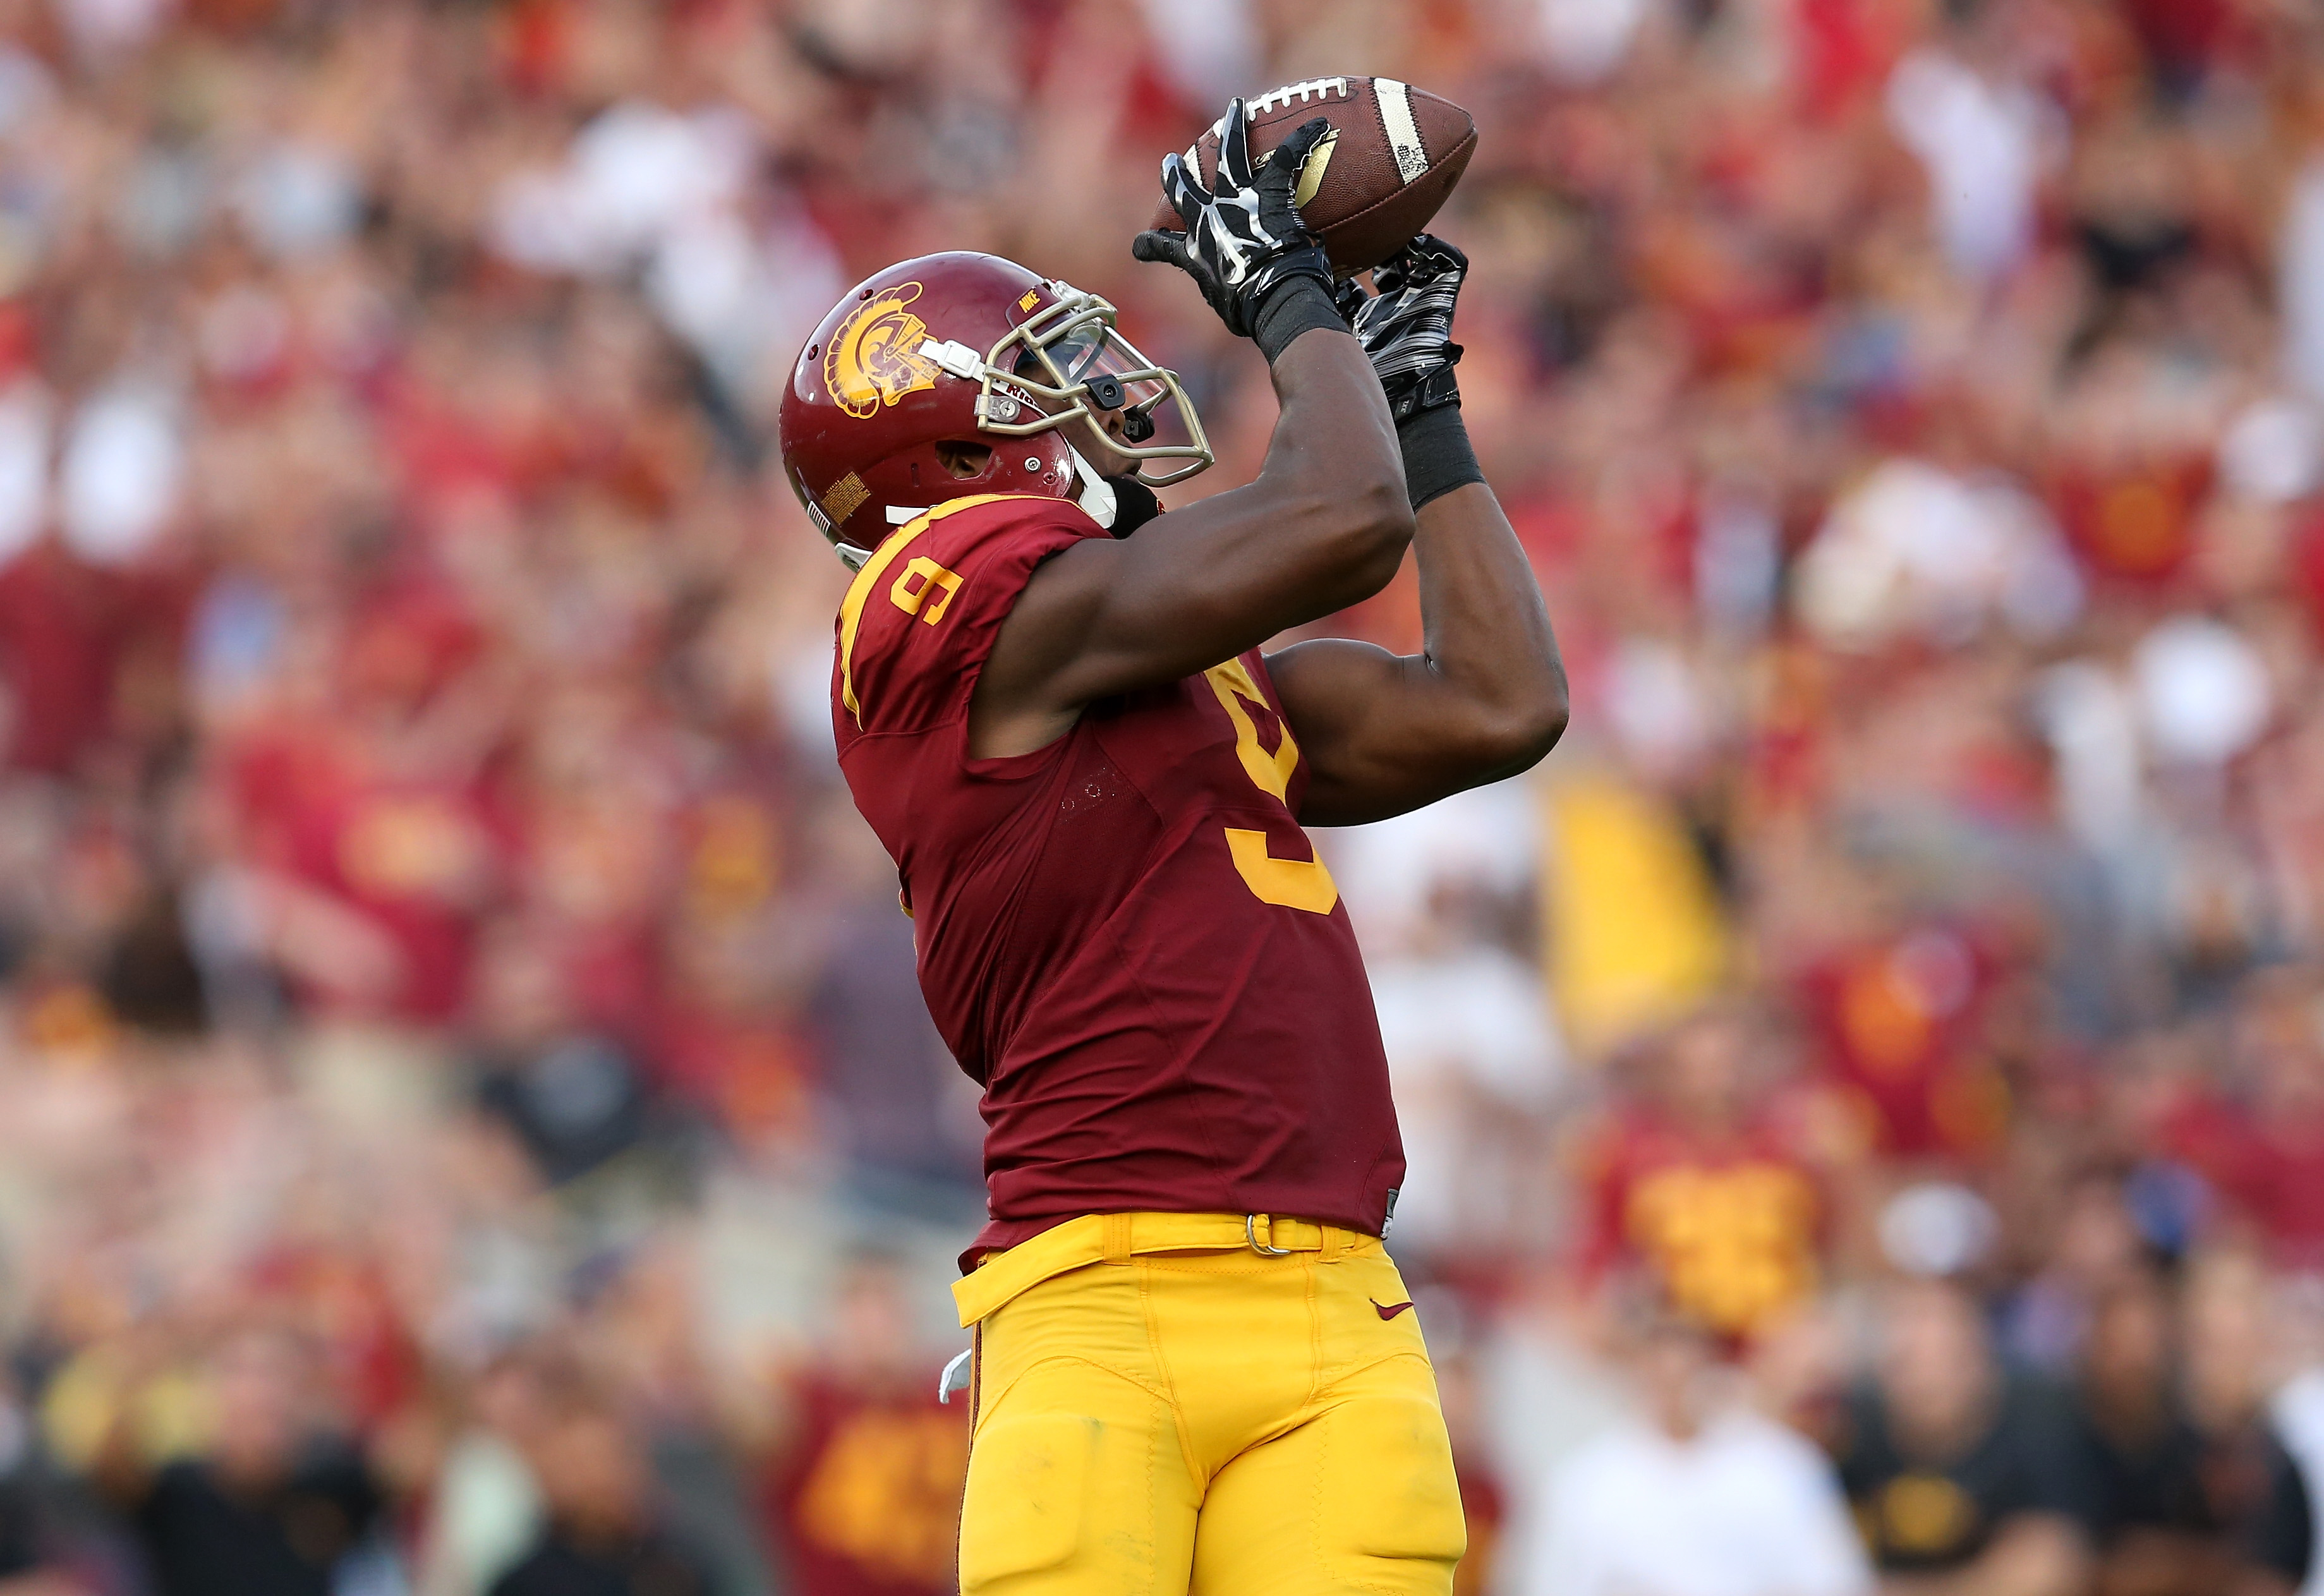 LOS ANGELES, CA - SEPTEMBER 12: Wide receiver JuJu Smith-Schuster #9 of the USC Trojans catches the ball before carrying it into the zone on a 50 yard touchdown pass play in tthe first quarter against the Idaho Vandals at Los Angeles Memorial Coliseum on September 12, 2015 in Los Angeles, California. (Photo by Stephen Dunn/Getty Images)